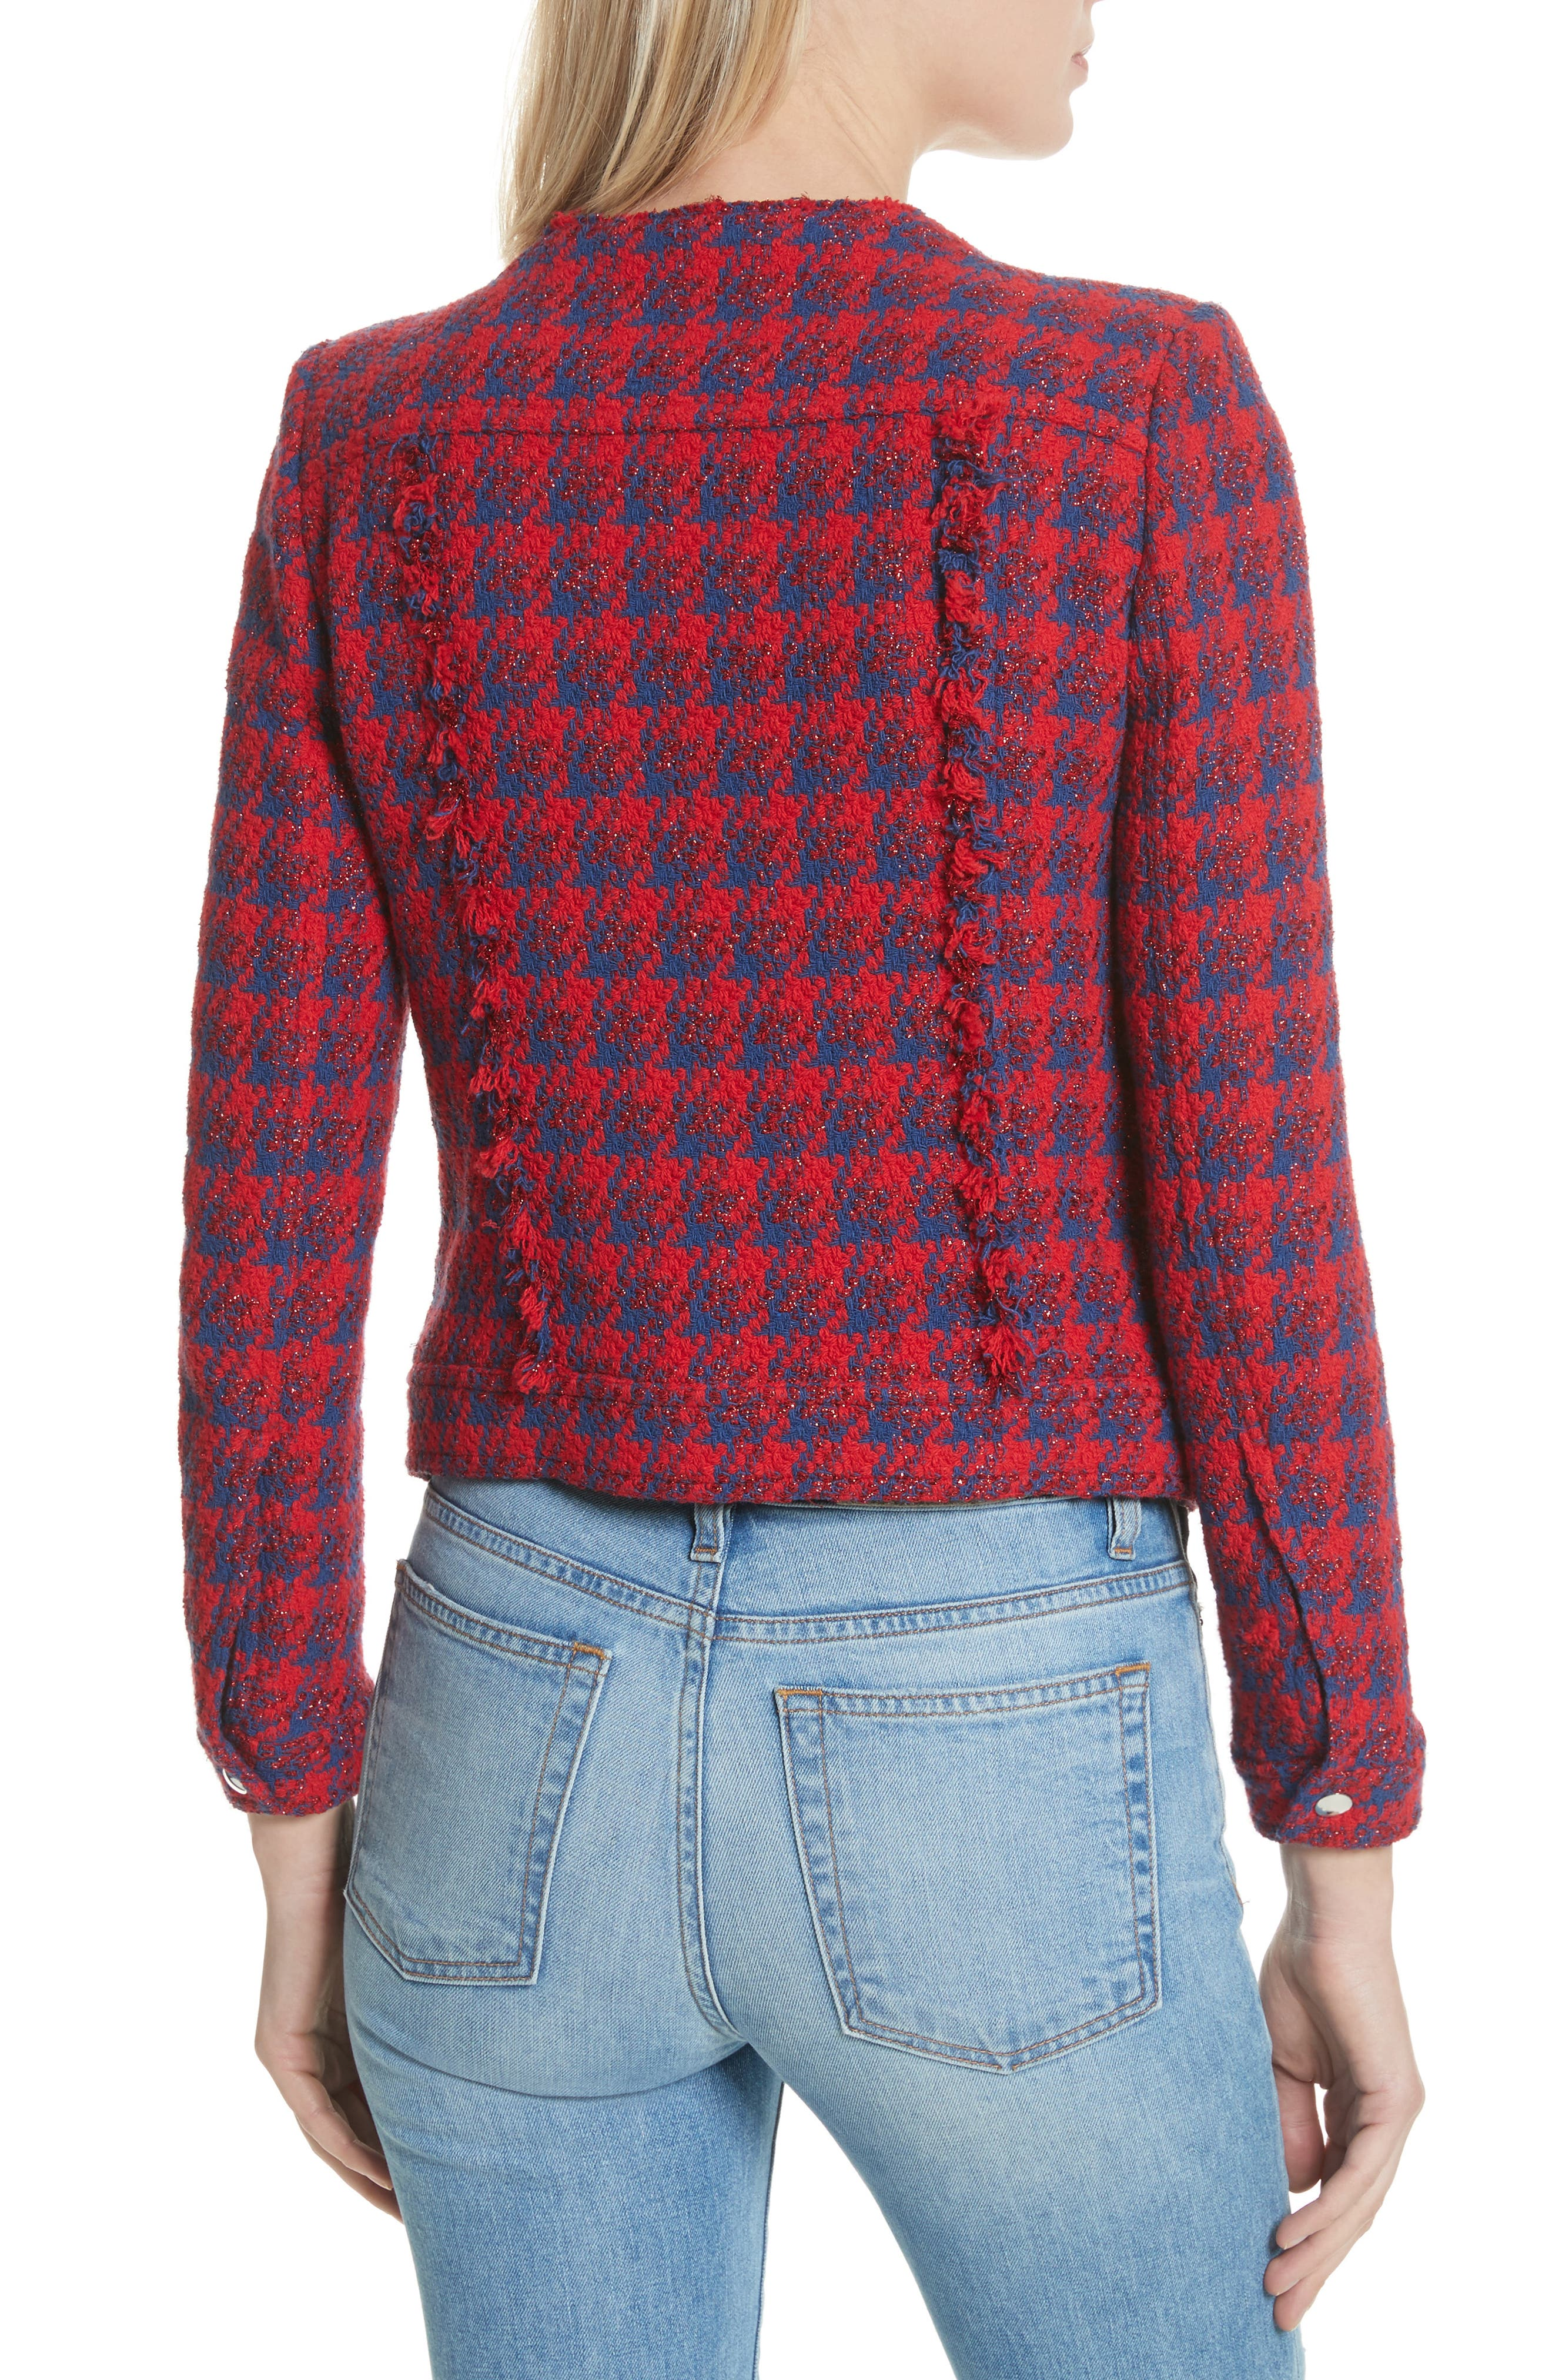 Quilombre Houndstooth Tweed Jacket,                             Alternate thumbnail 2, color,                             630